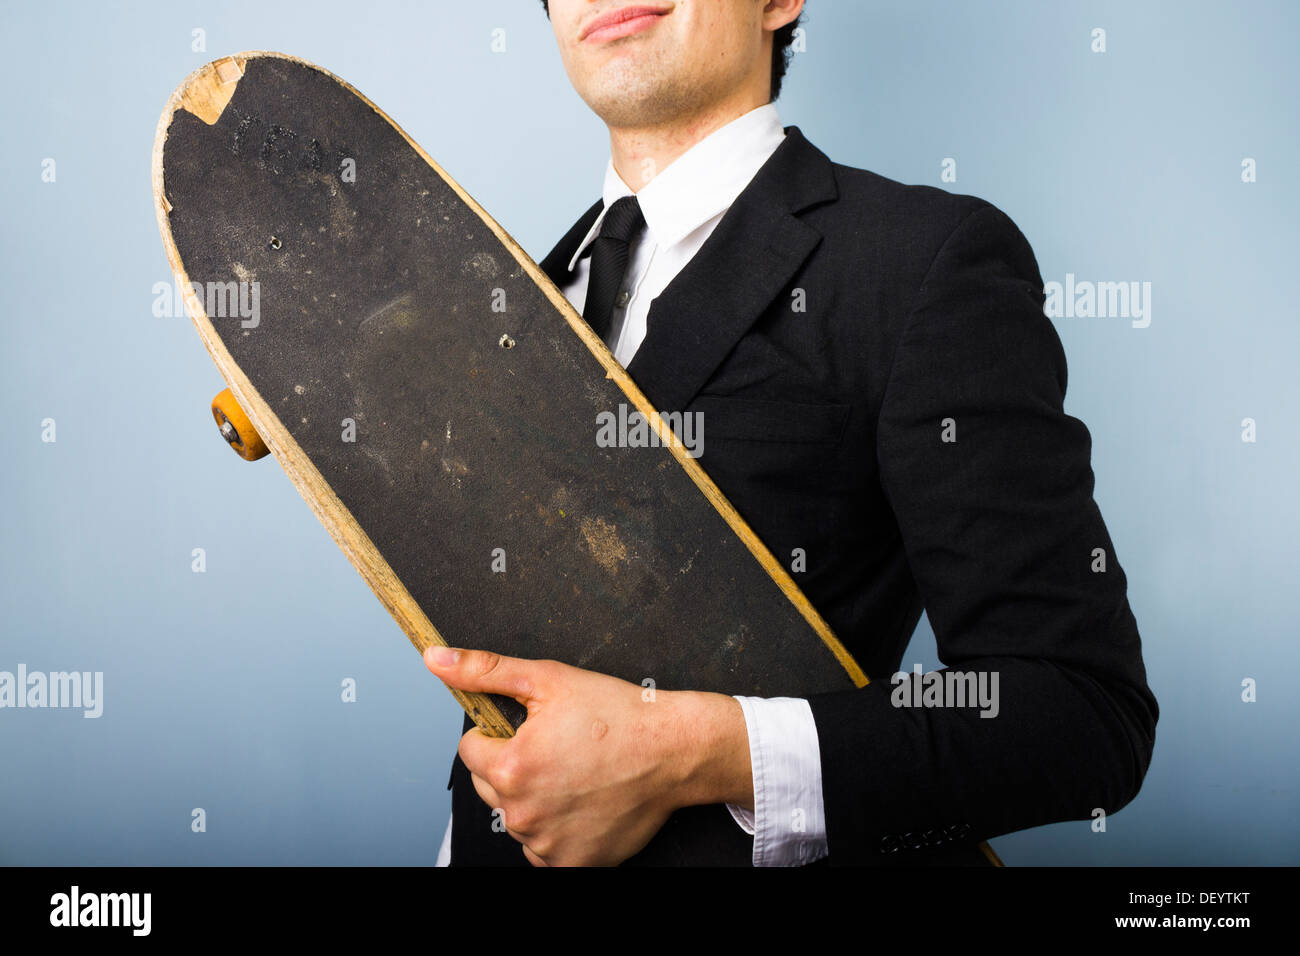 Young businessman looking smug and happy with his skateboard - Stock Image